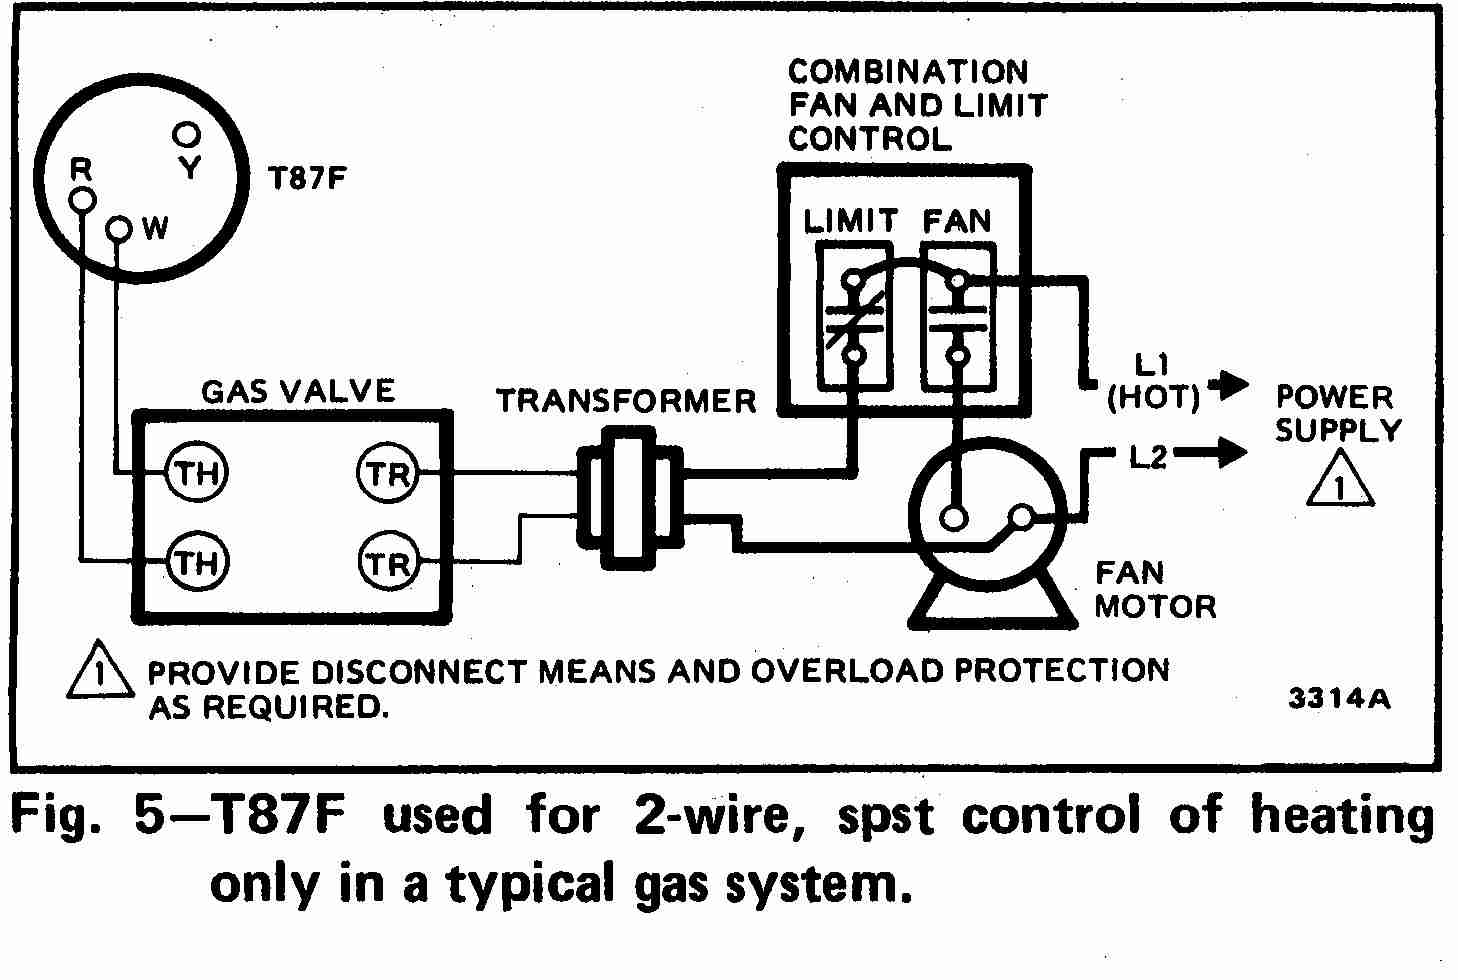 TT_T87F_0002_2Wg_DJF room thermostat wiring diagrams for hvac systems fan limit control wiring diagram at alyssarenee.co